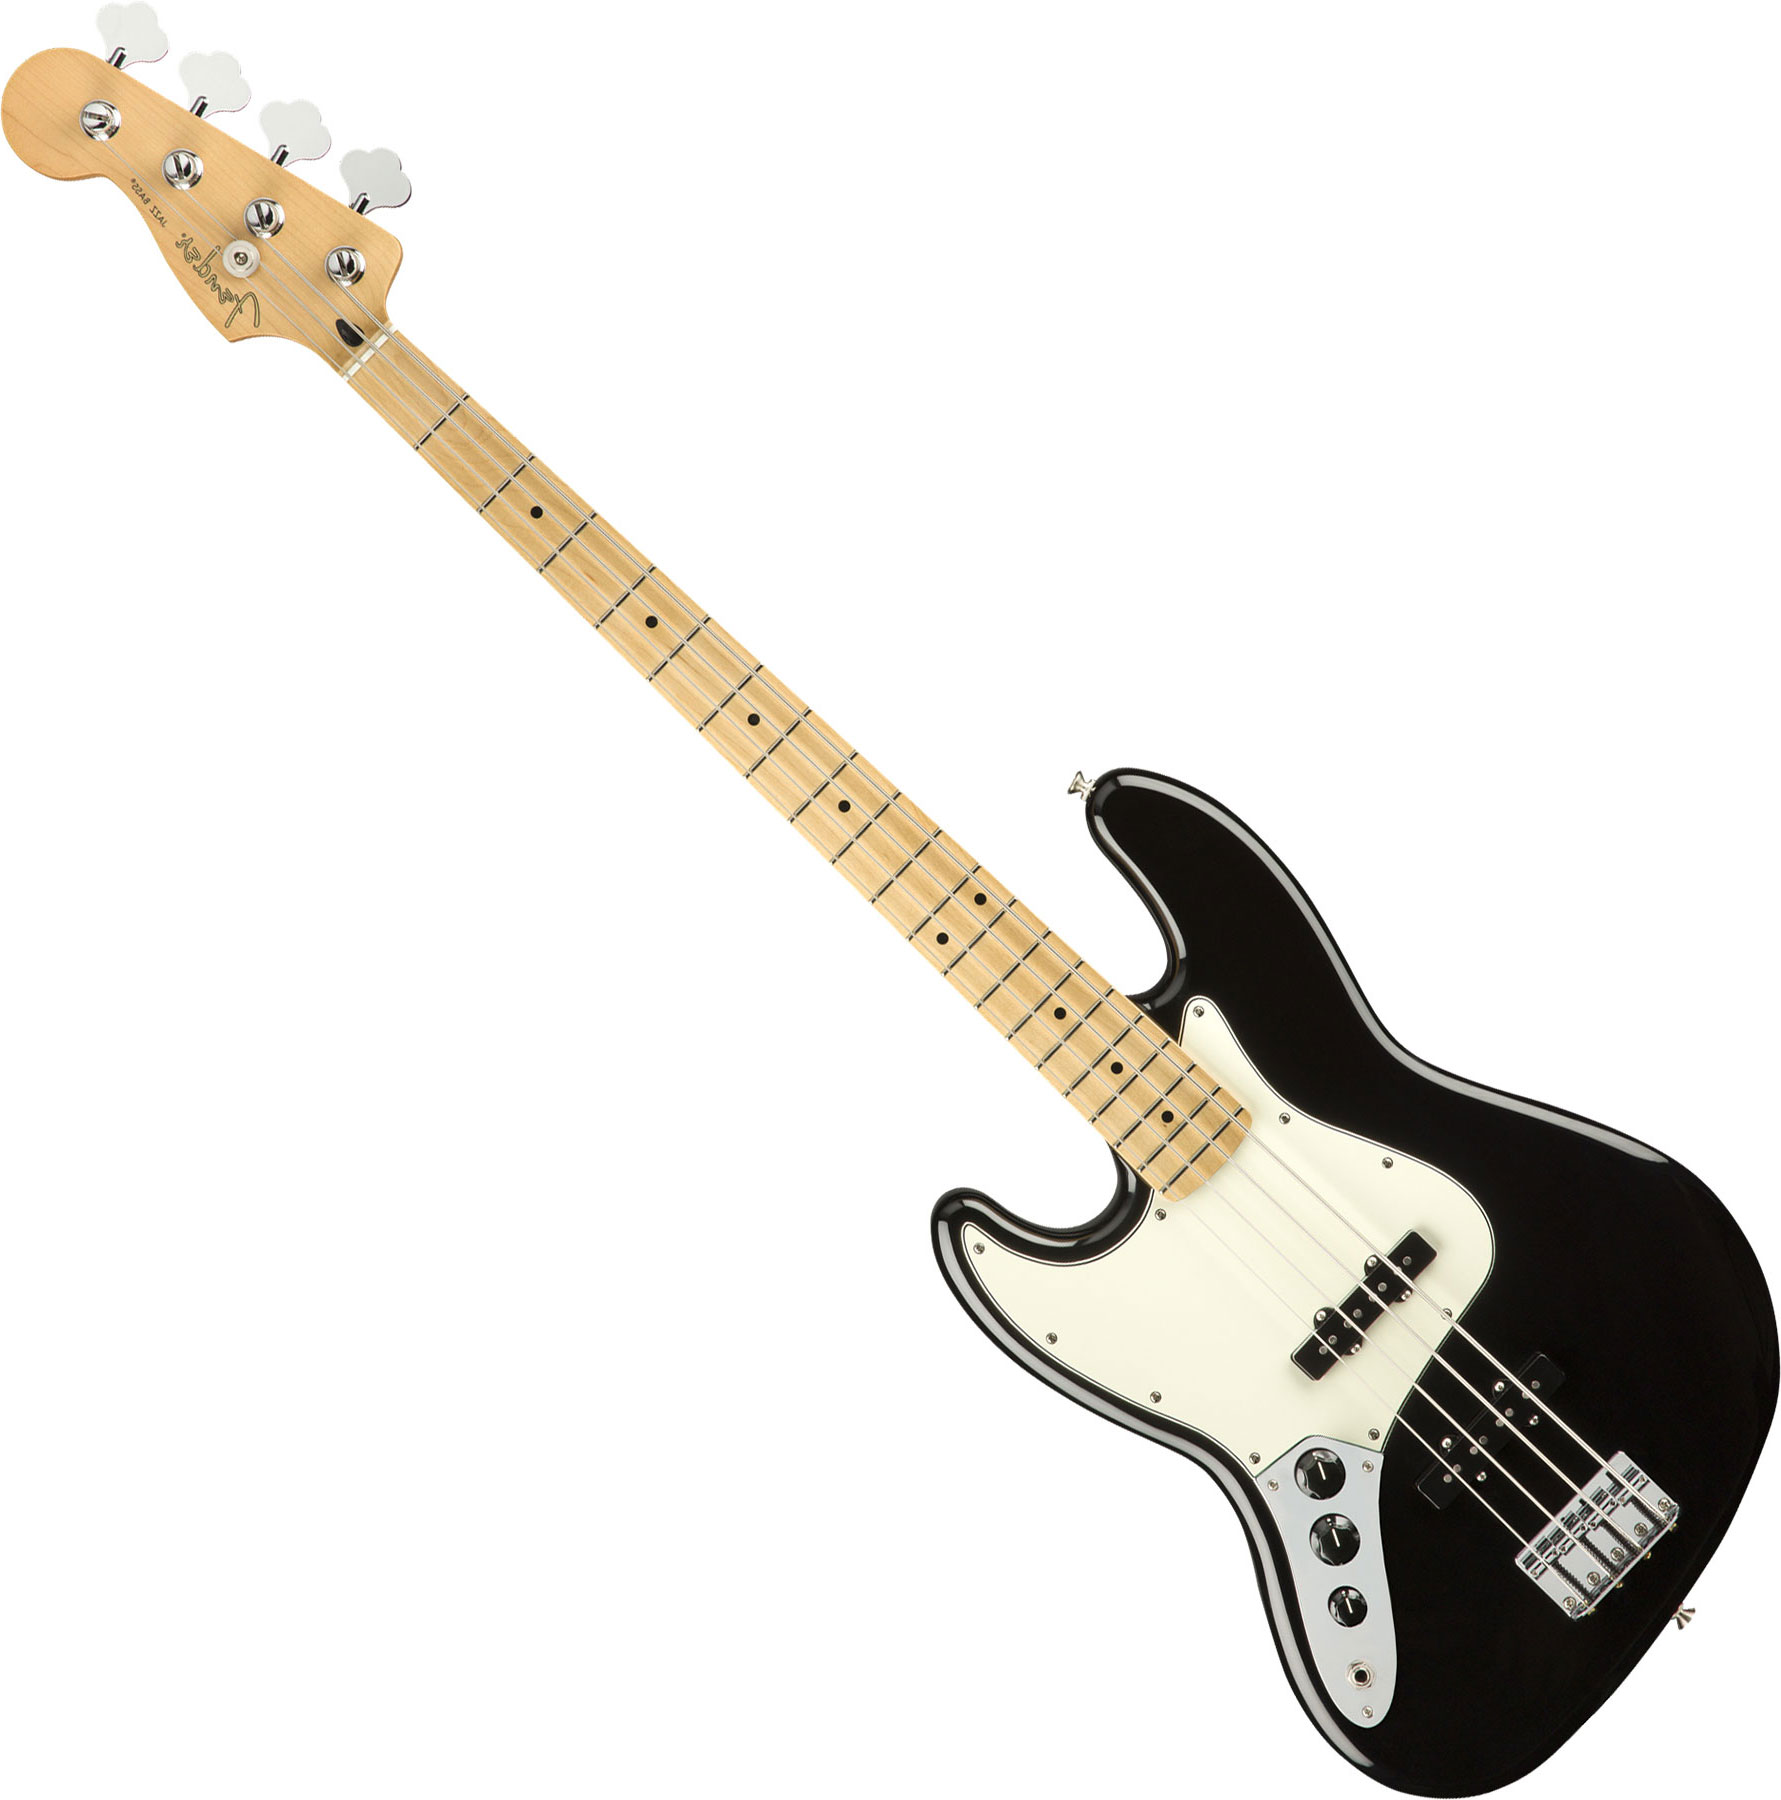 Player Jazz Bass Left Hand (MEX, MN) black